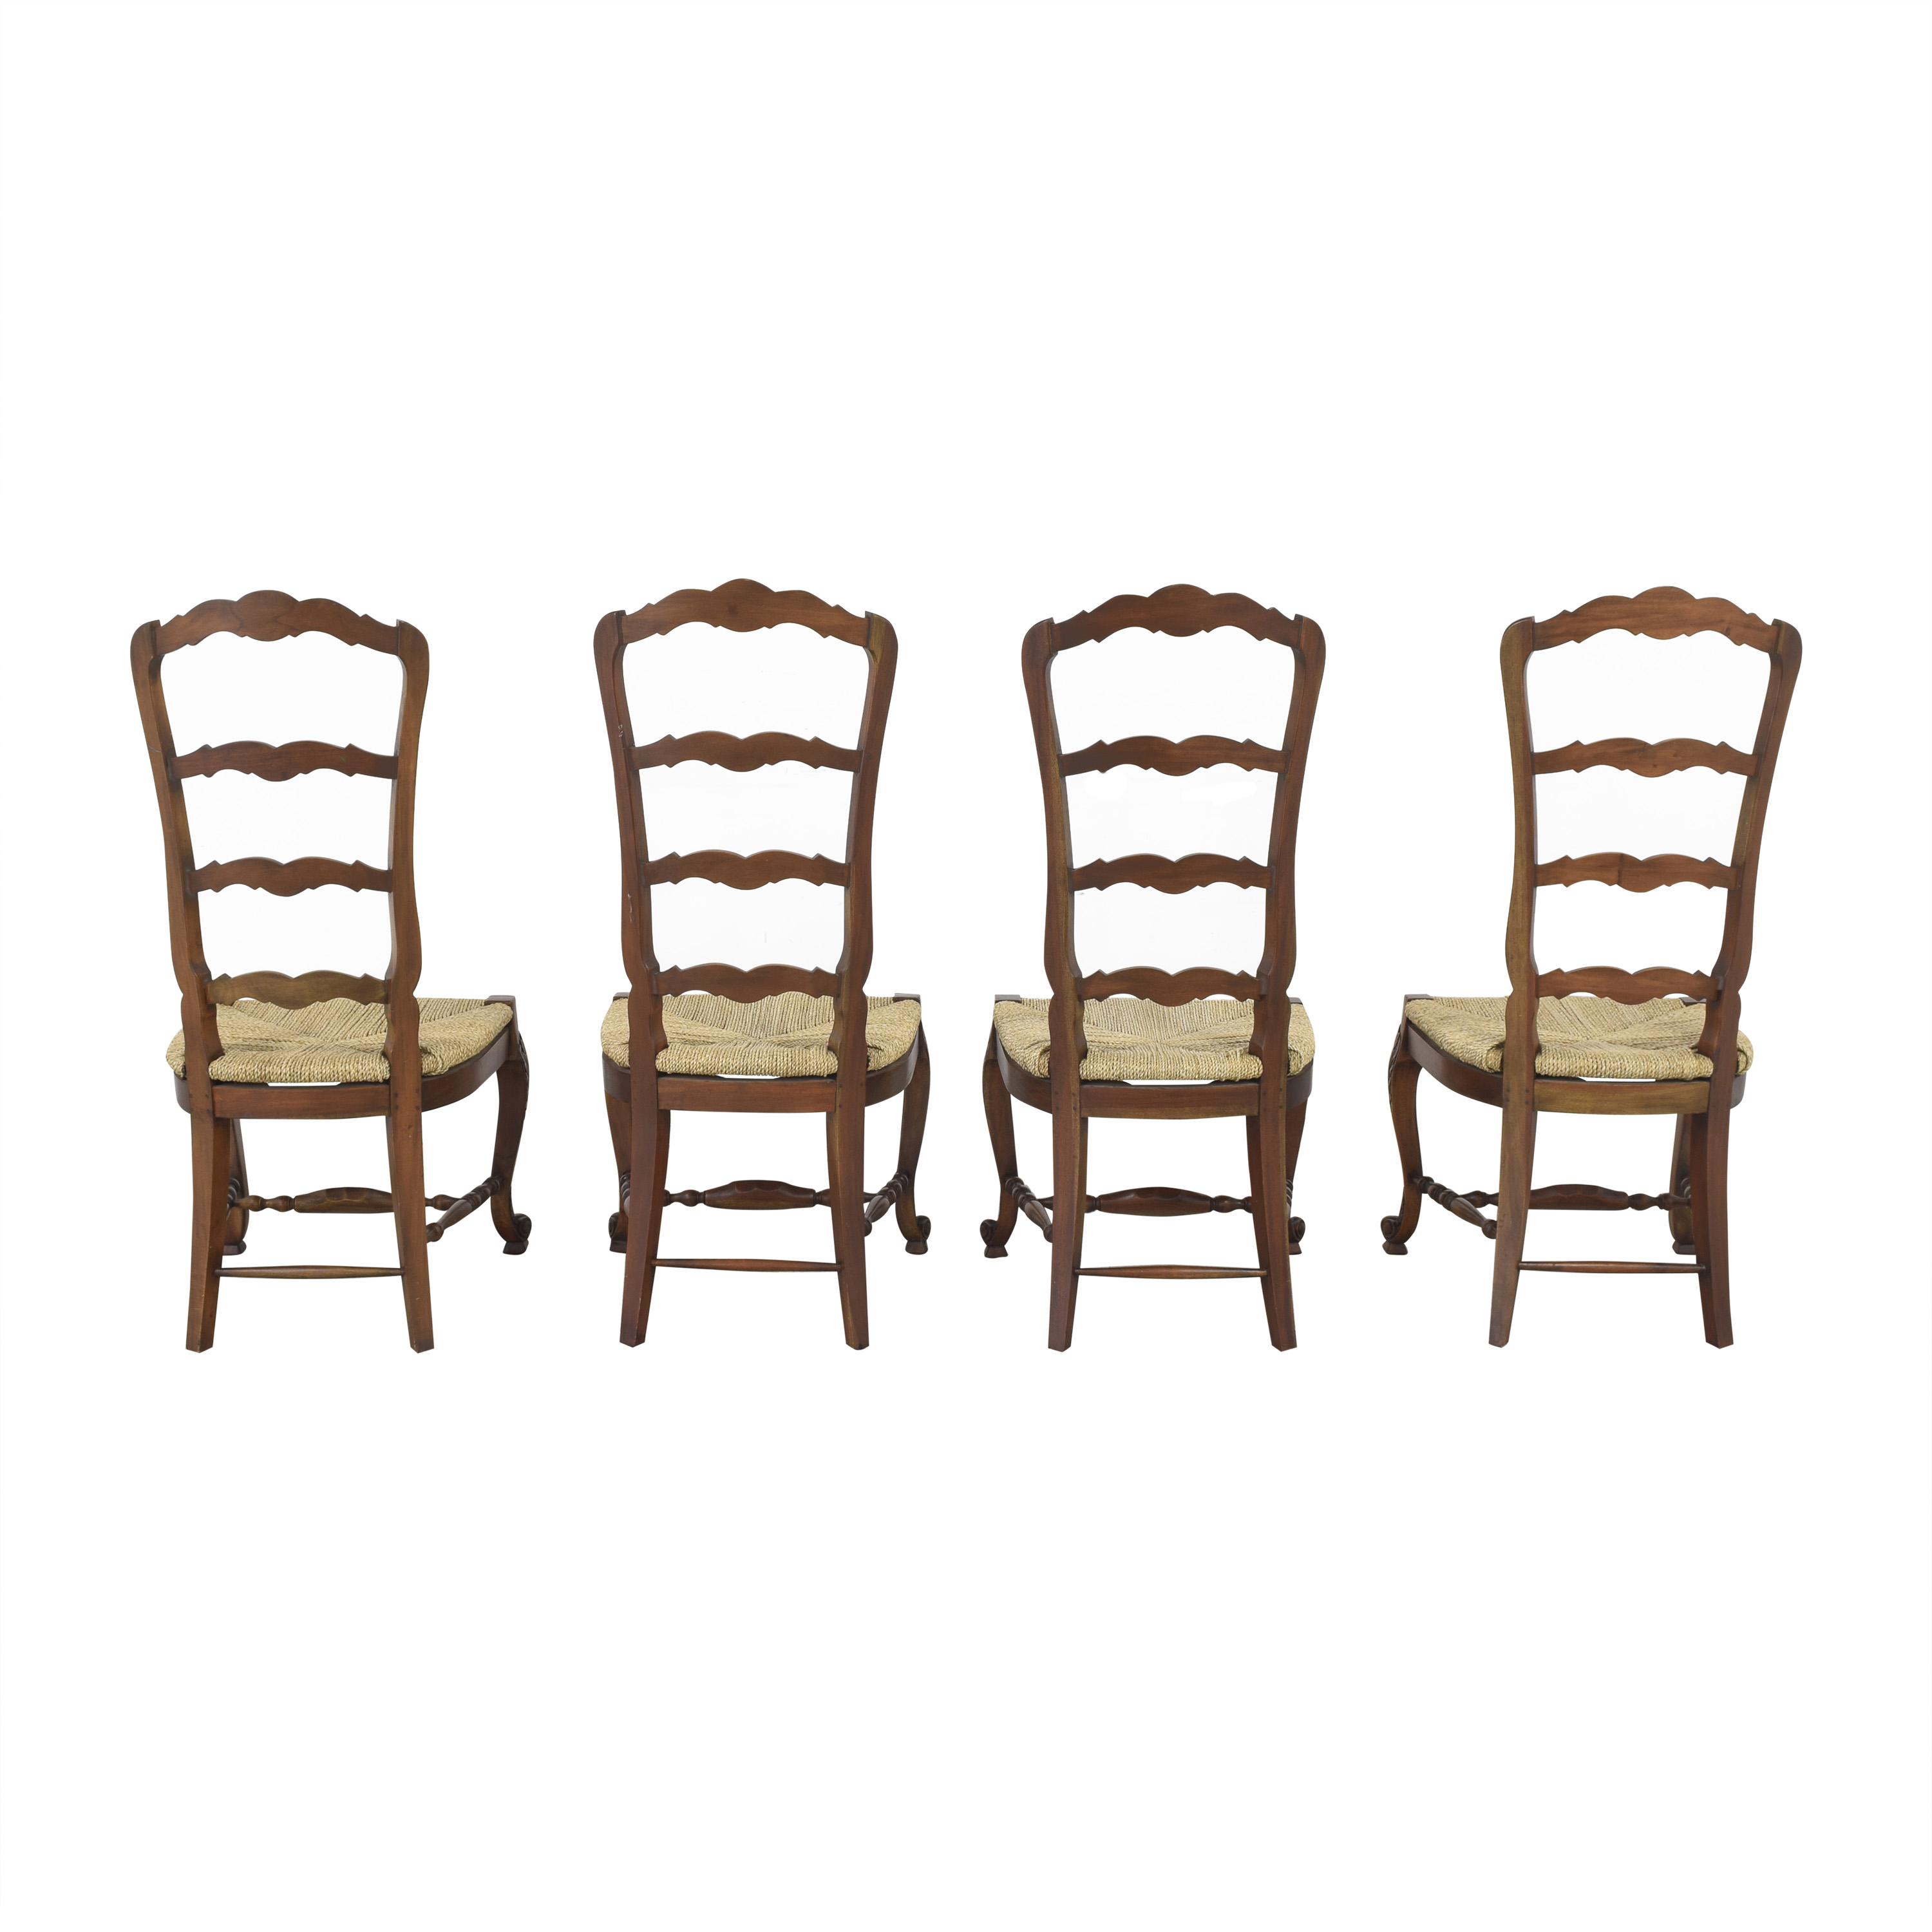 Marie Albert Marie Albert French Country Ladder Back Dining Chairs ma